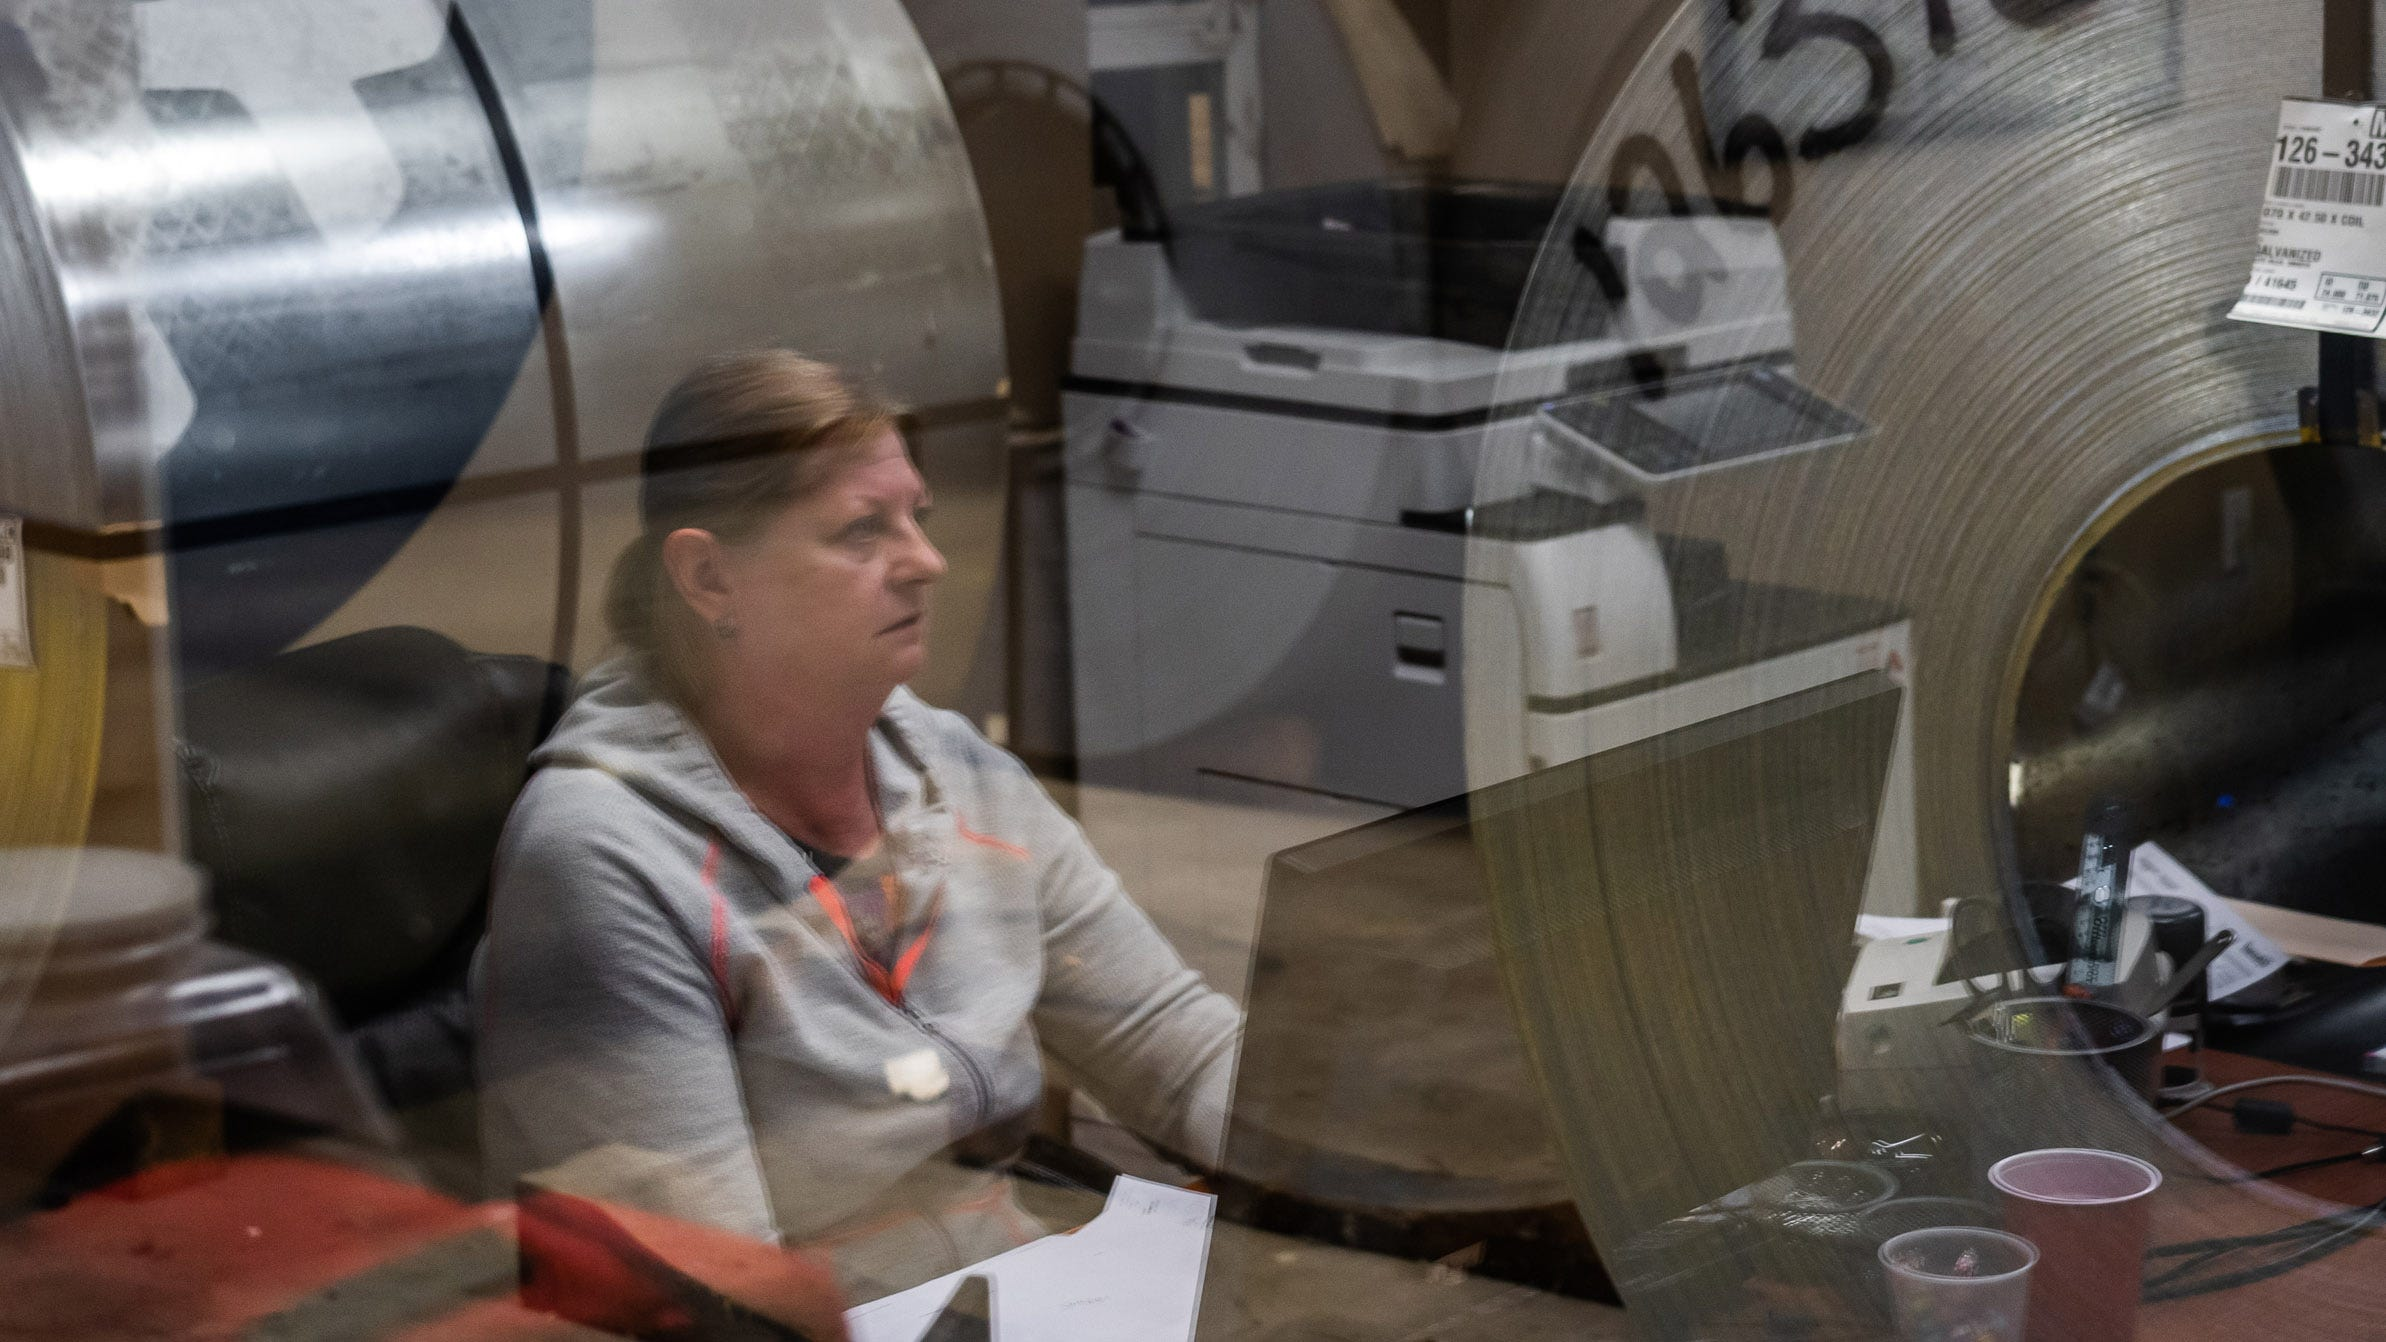 Hascall Steel Company employee Sharon Lathrop talks in April about the change in her route getting to and from work due to the widening of I-94 in Detroit, while reflected on her office window as rolls of steel sit inside the business.